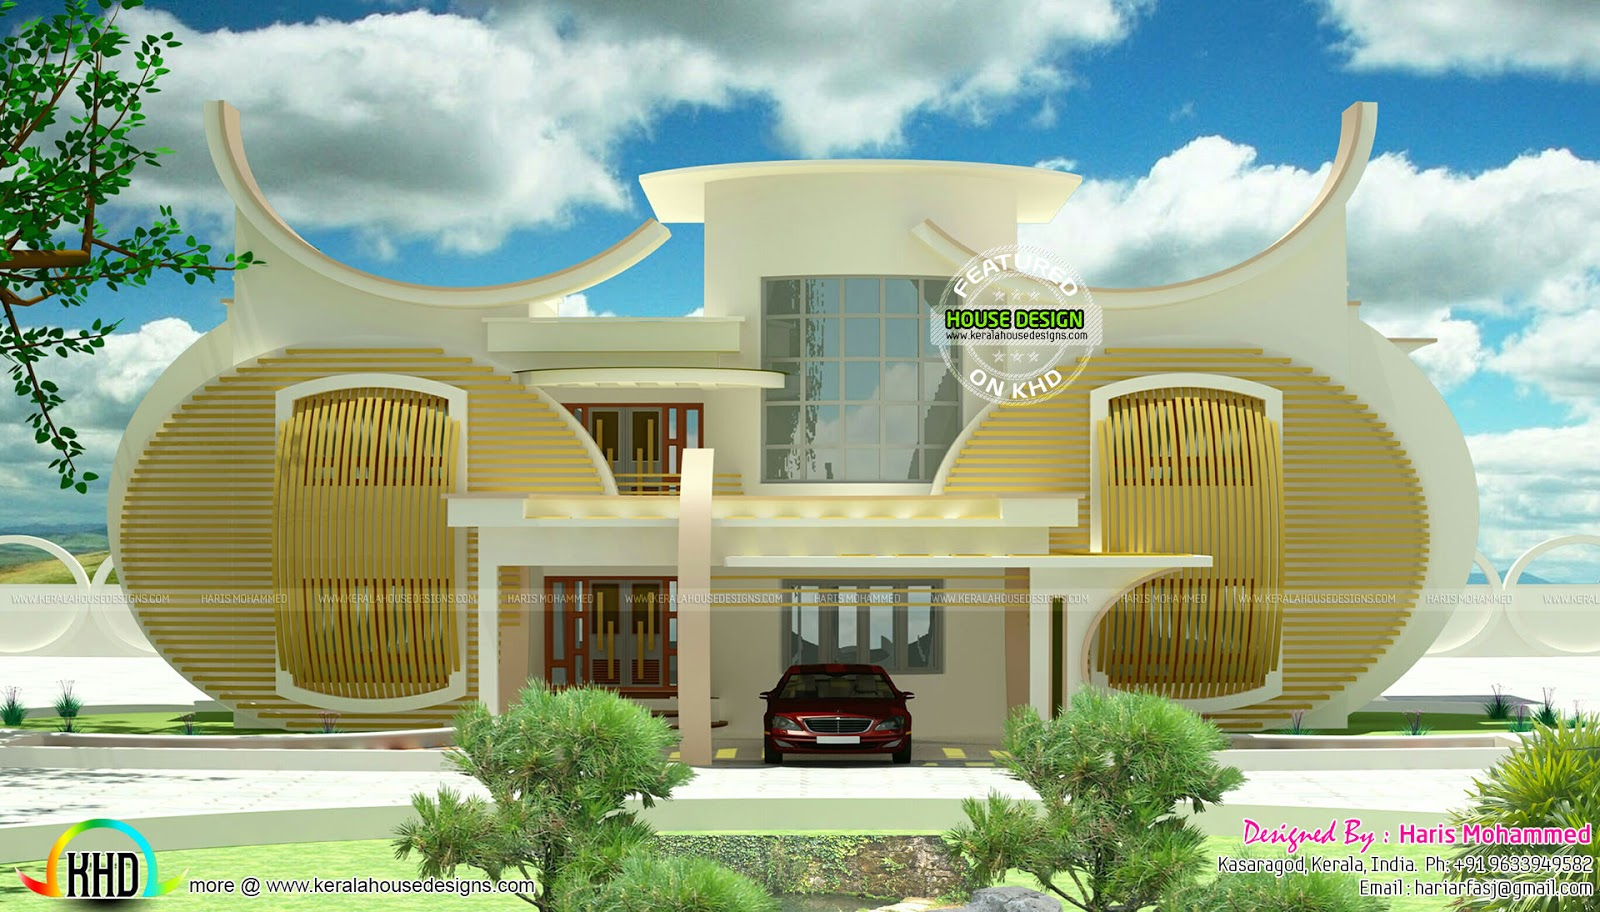 Strange circular home design kerala home design and for House floor design